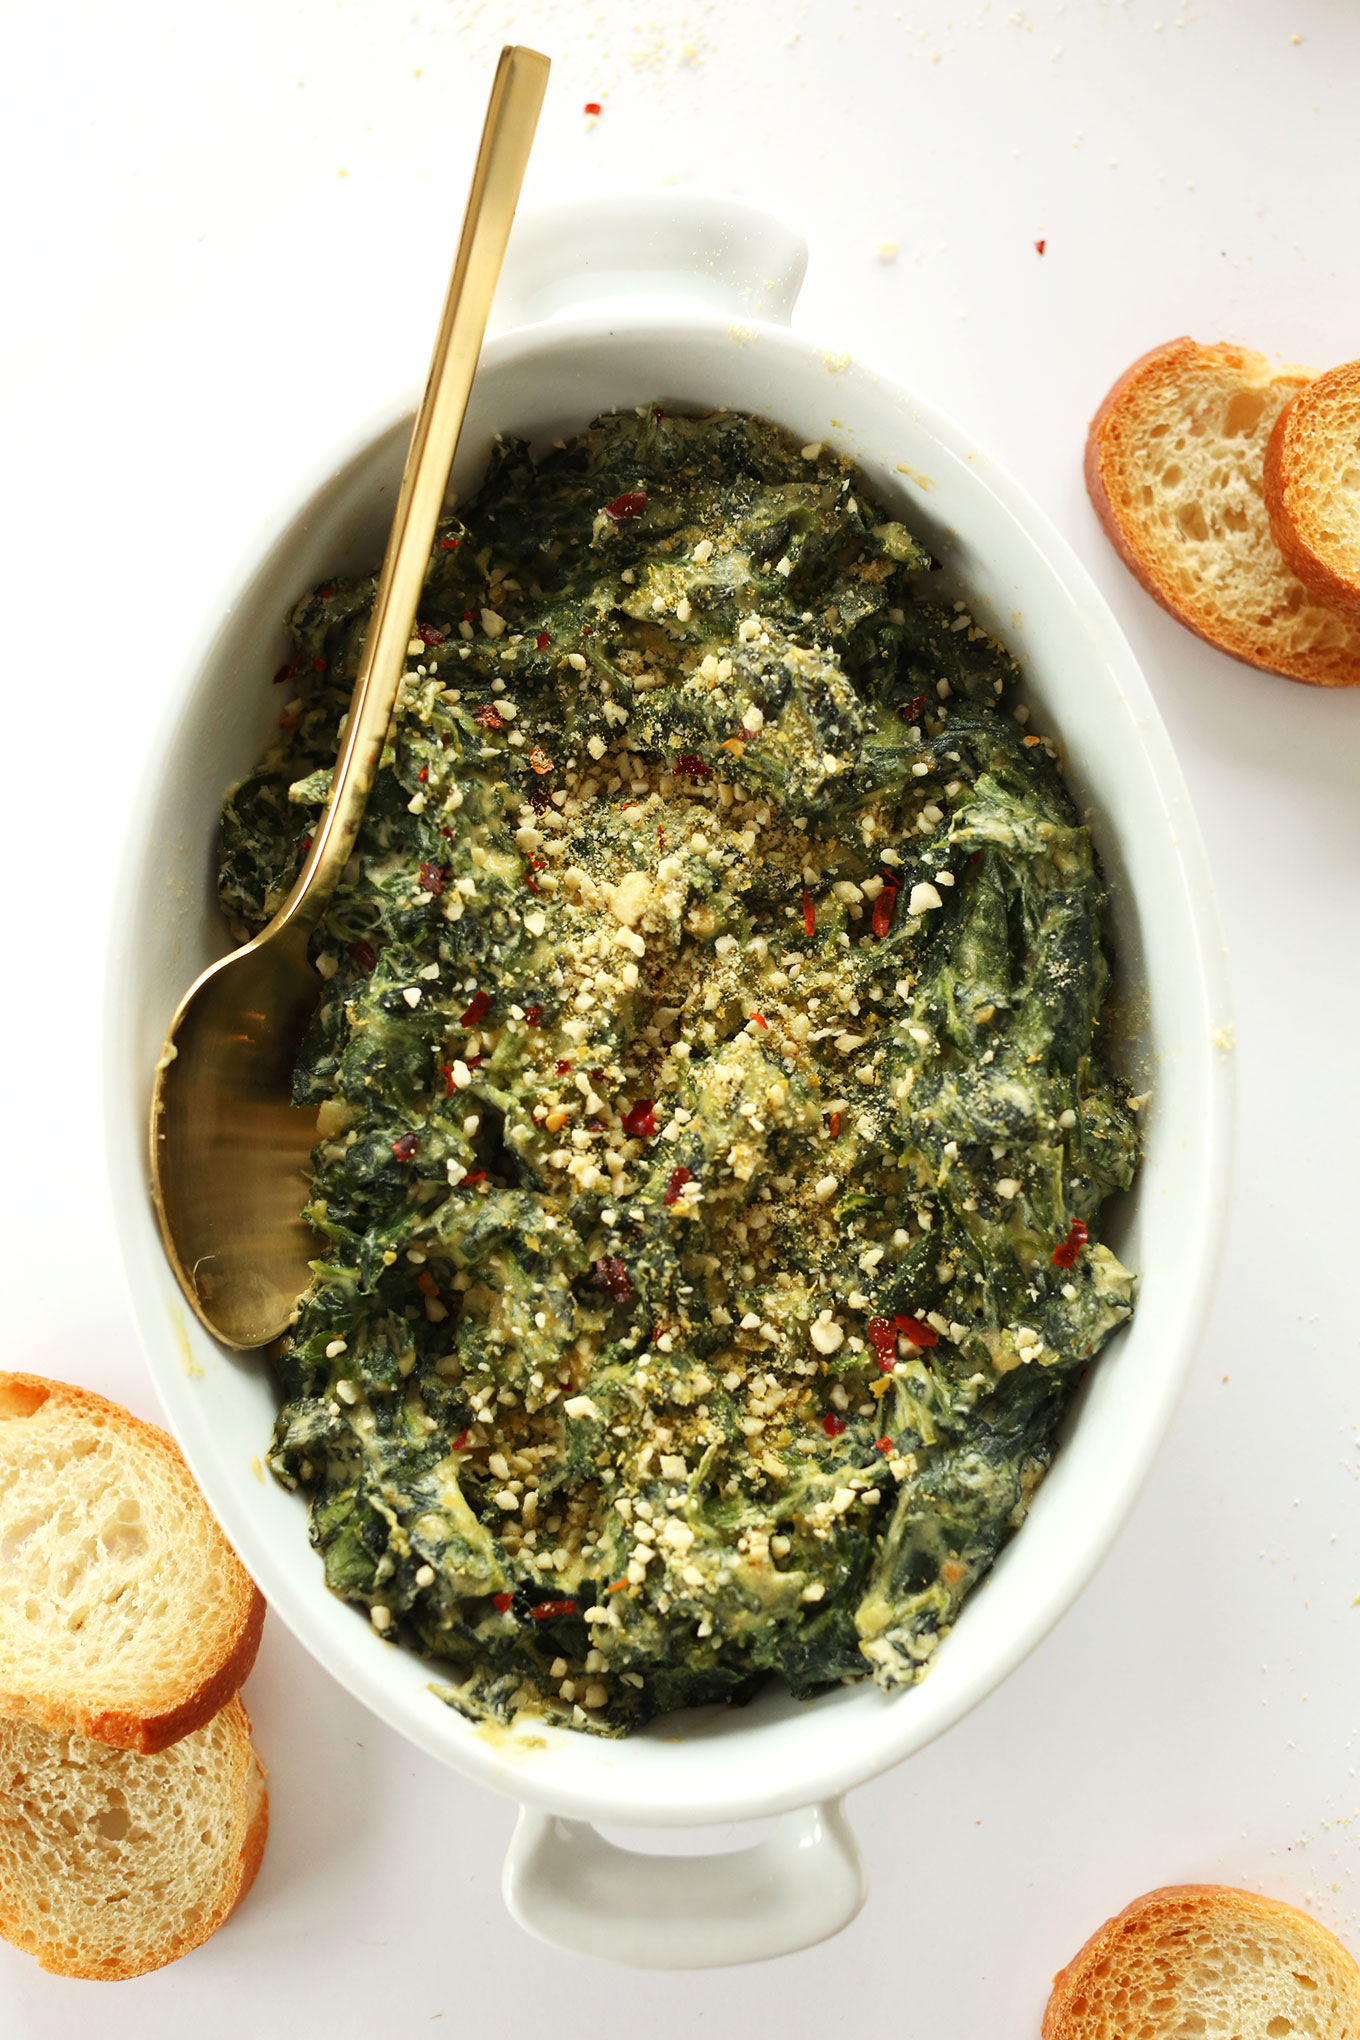 AMAZING Creamy Kale and Spinach Dip - completely dairy- and gluten-free and SO cheesy and delicious! #vegan #glutenfree #minimalistbaker